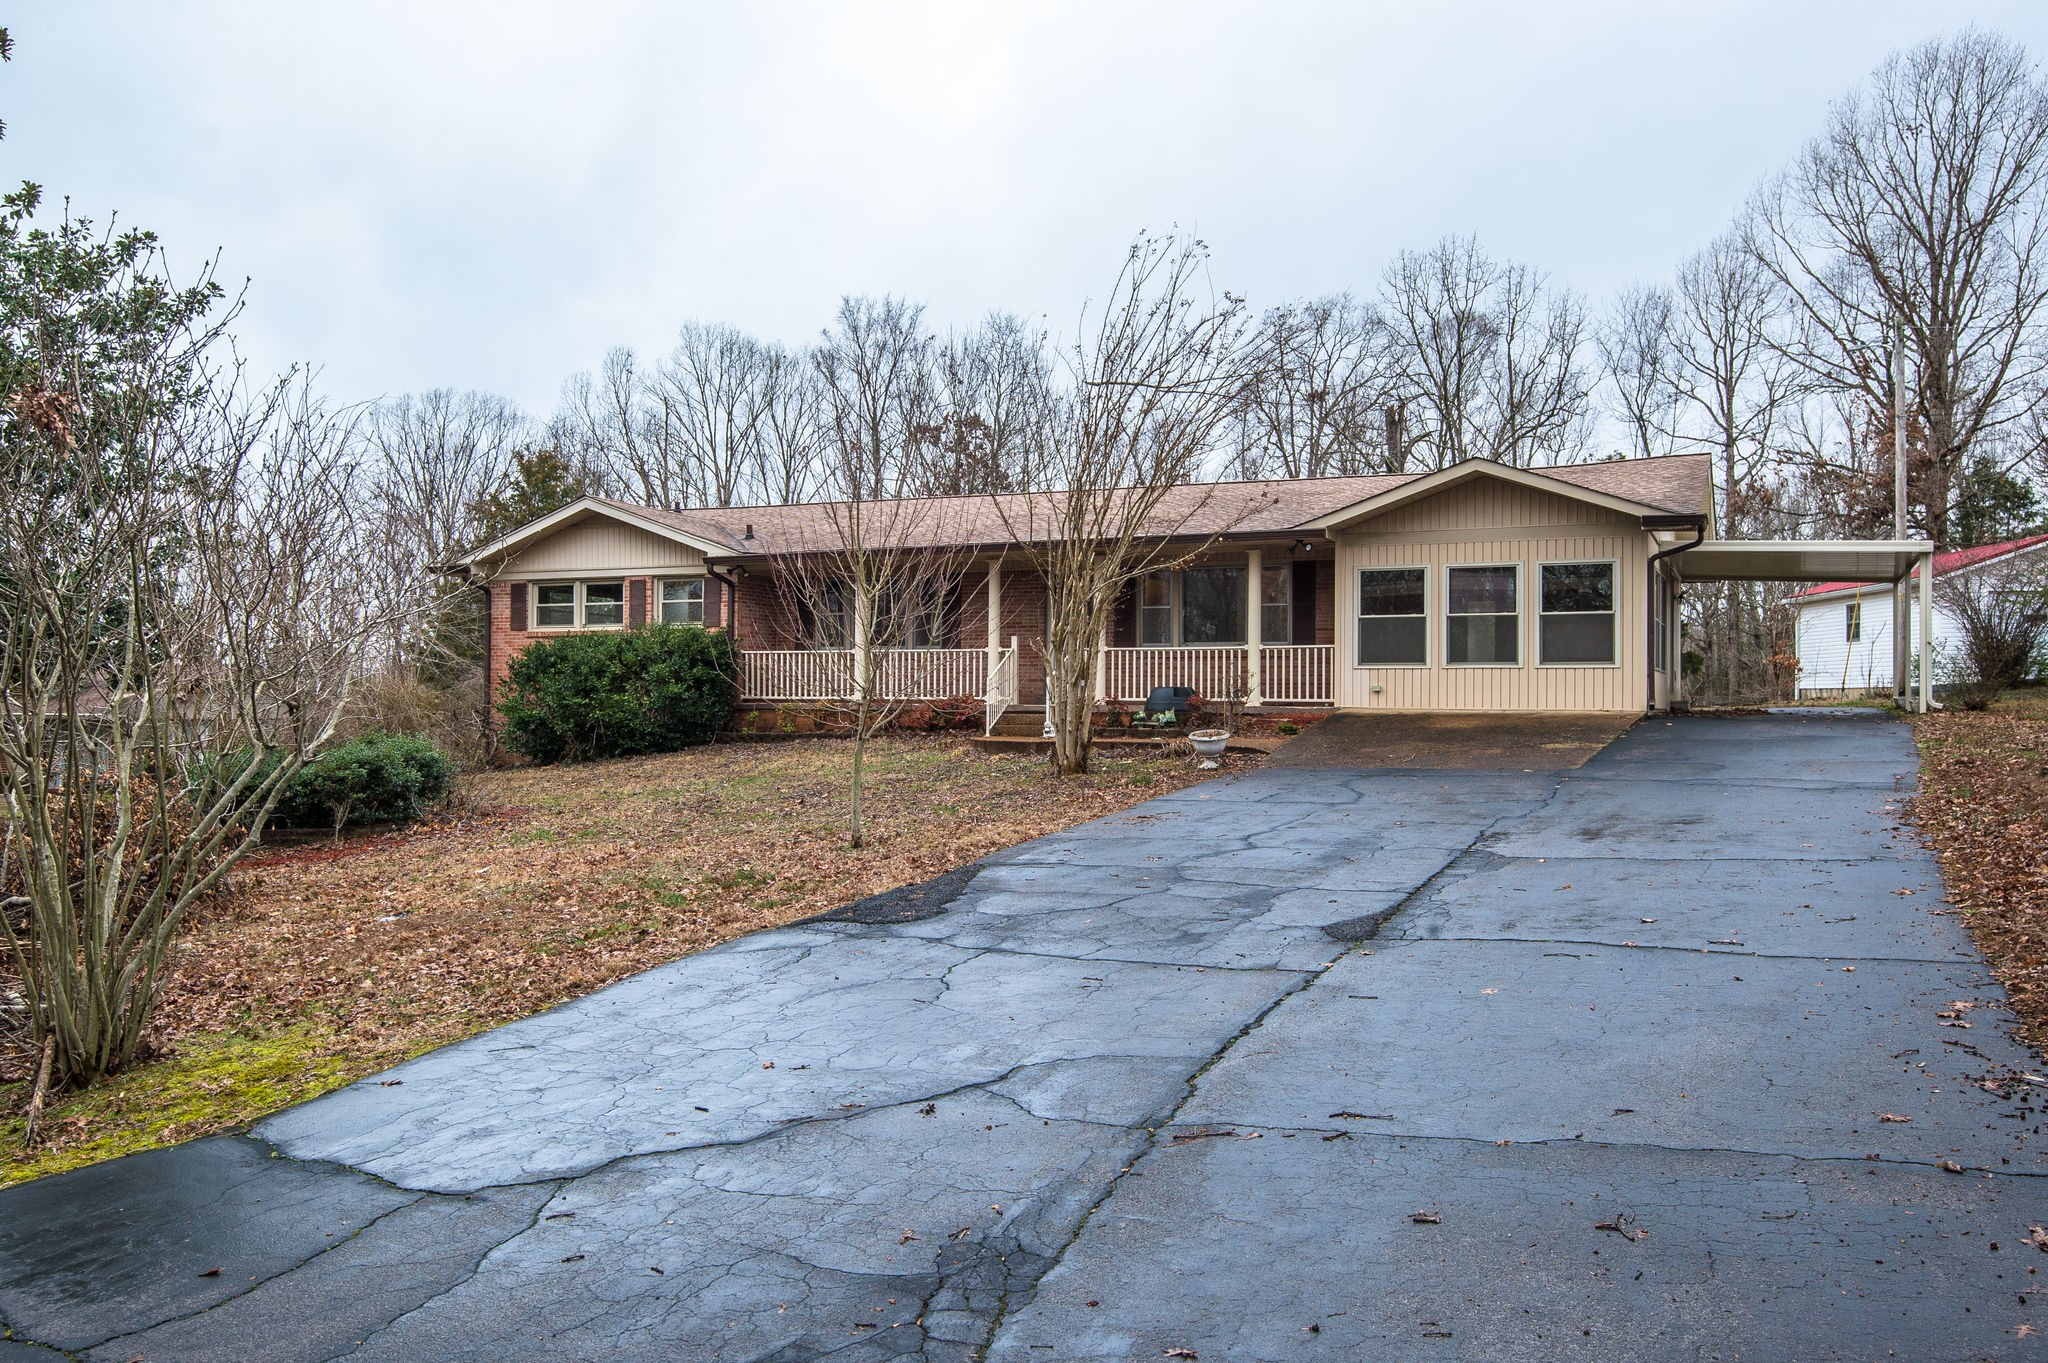 138 Circle Dr, Waverly, TN 37185 - Waverly, TN real estate listing